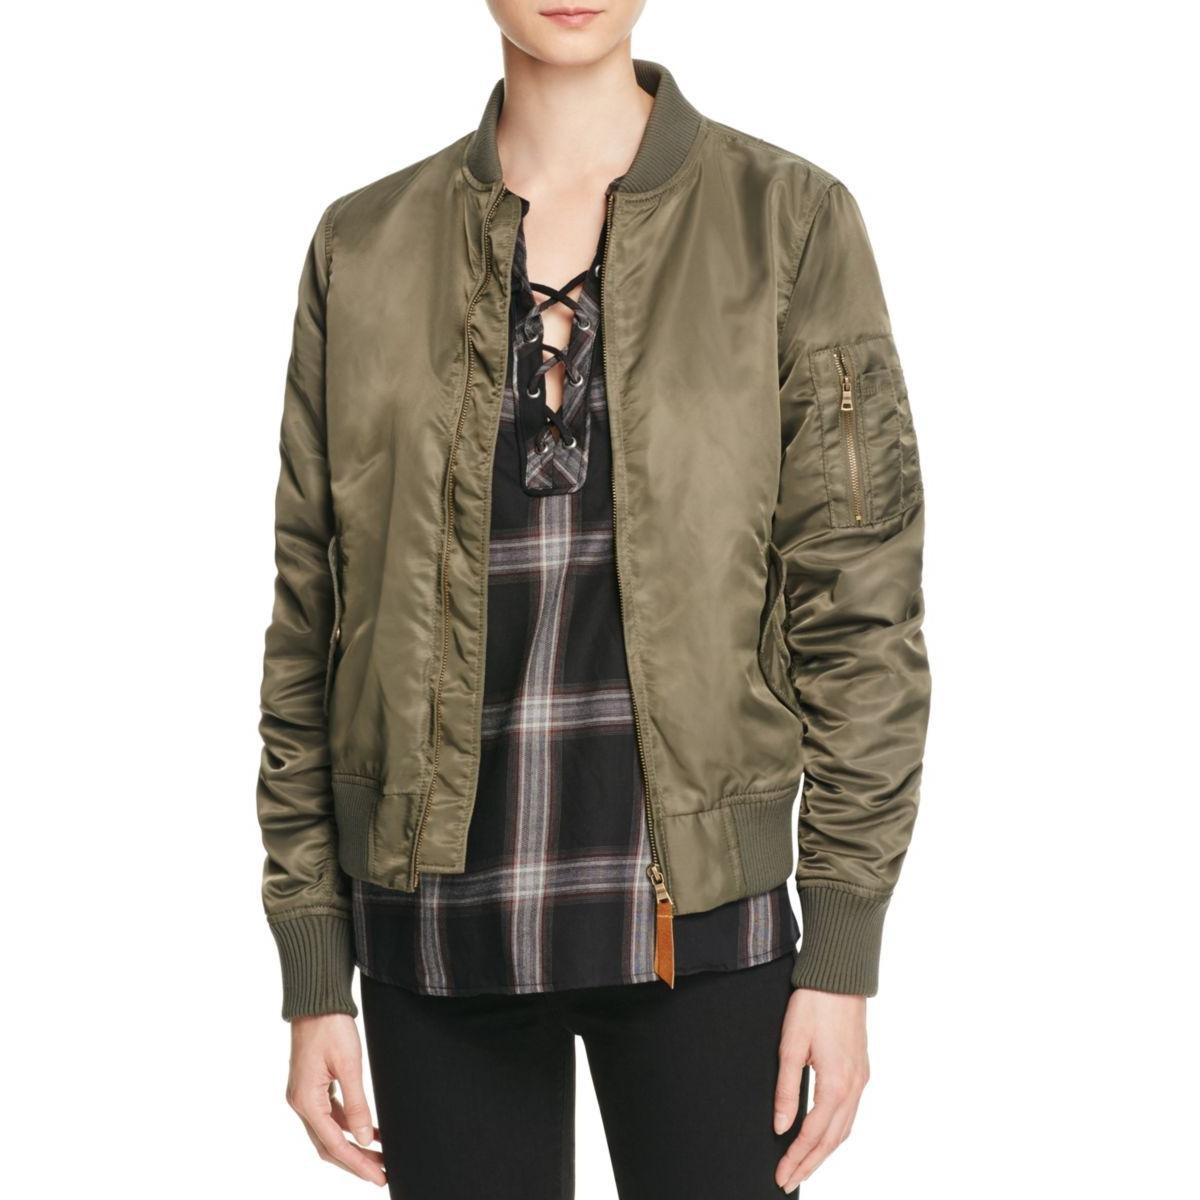 Sanctuary Women's Amelia Bomber Jacket In Military Green (Small)